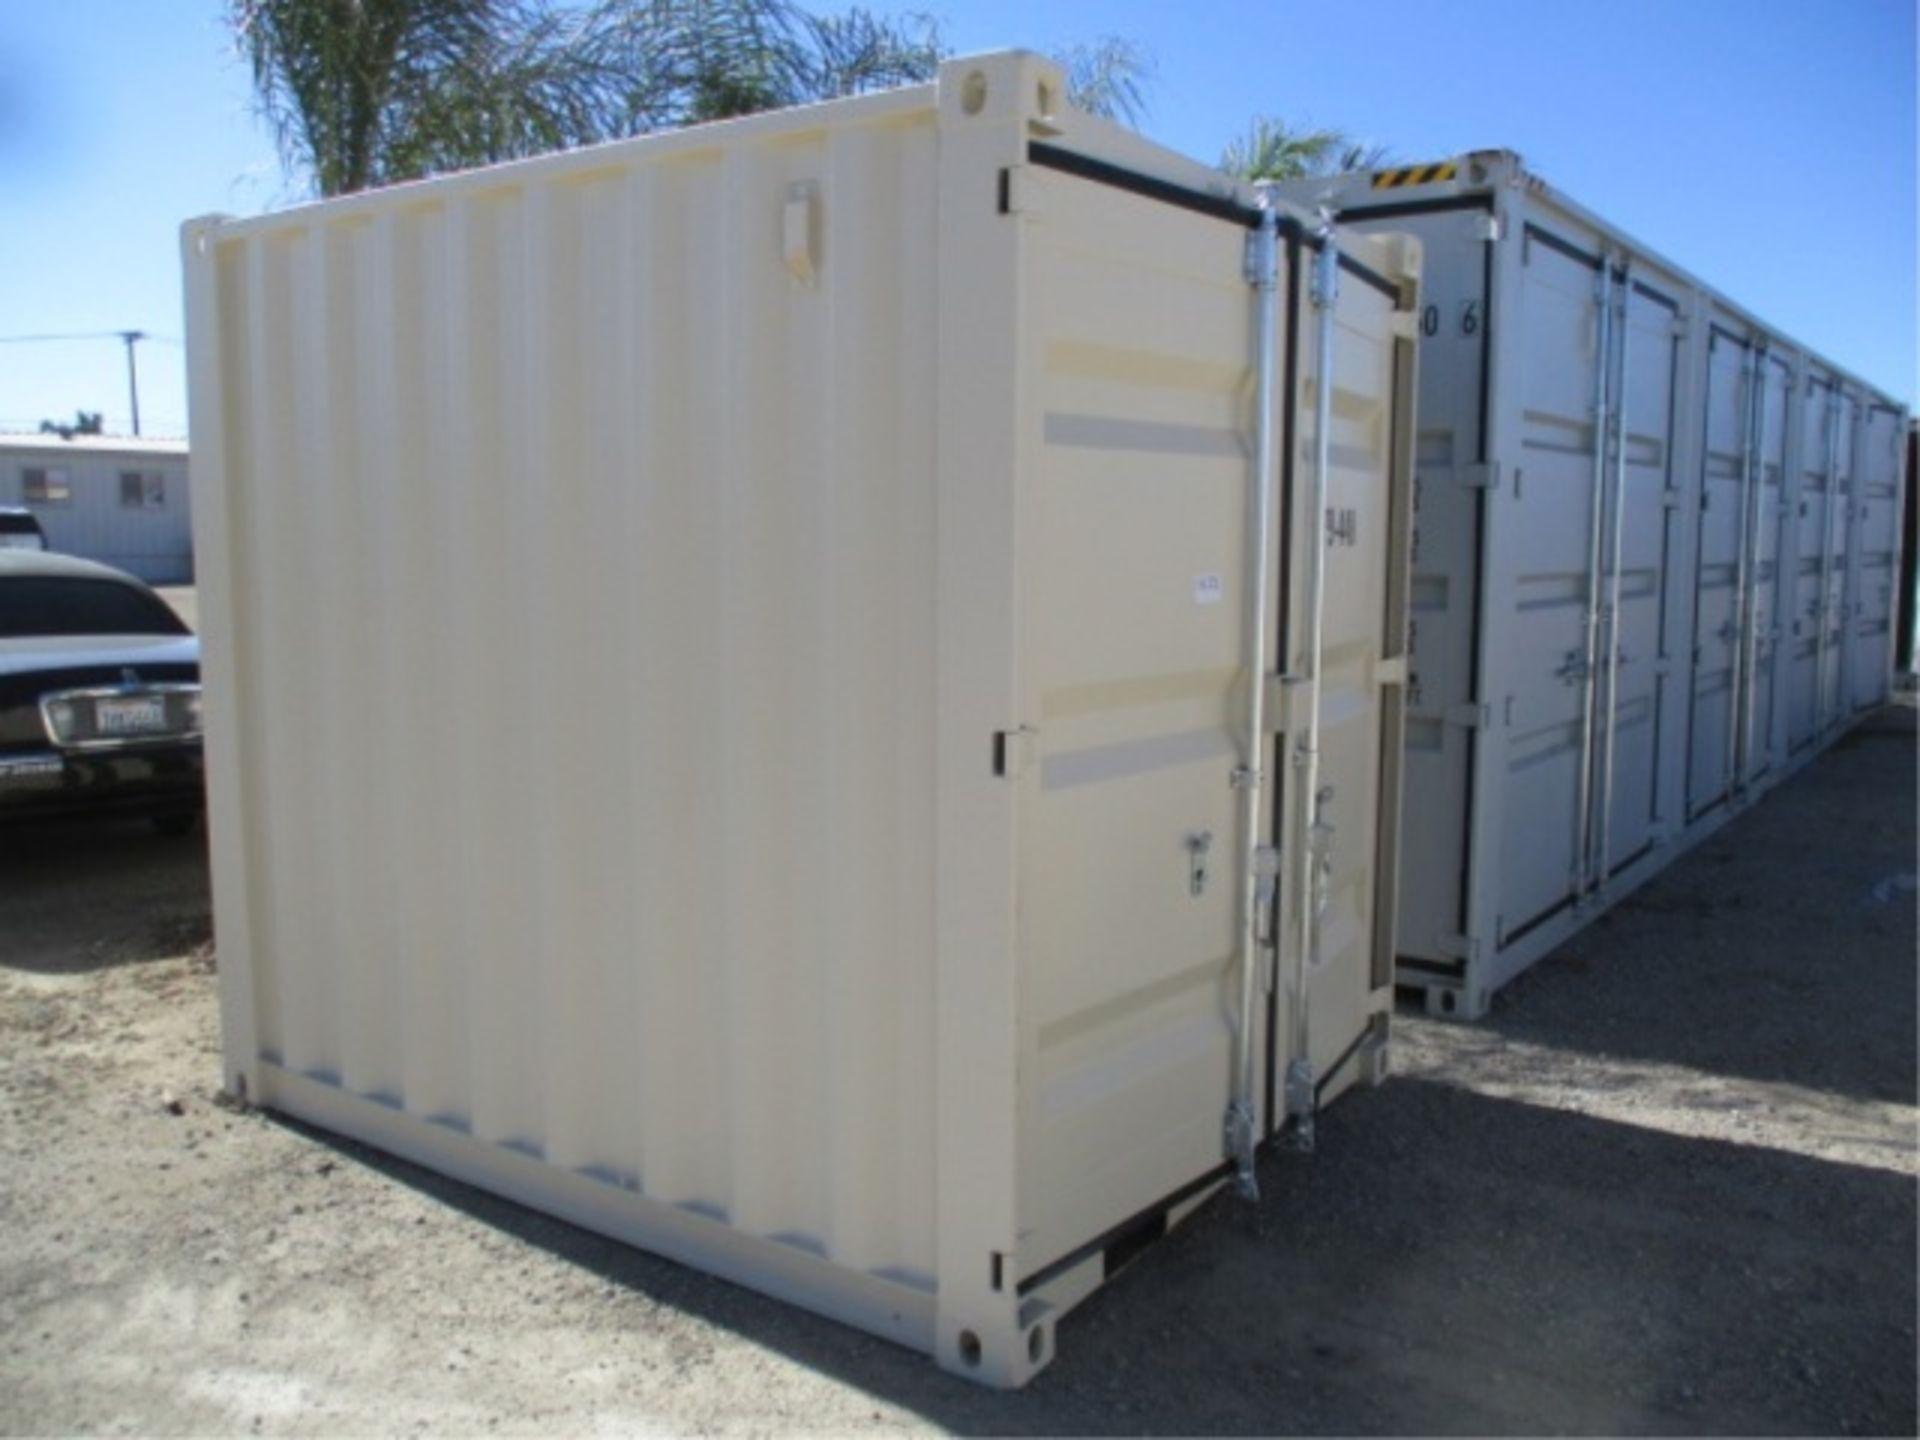 Lot 481 - Unused 9' Portable Office Container, S/N: LYP9-448